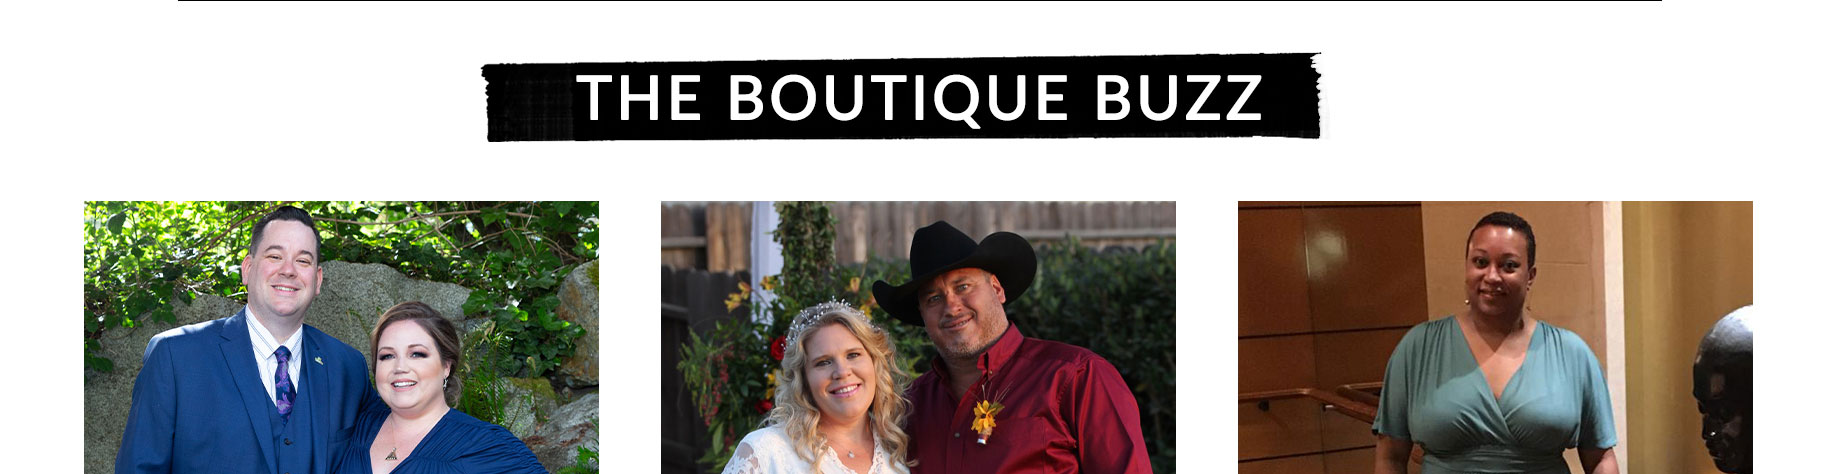 The Boutique Buzz